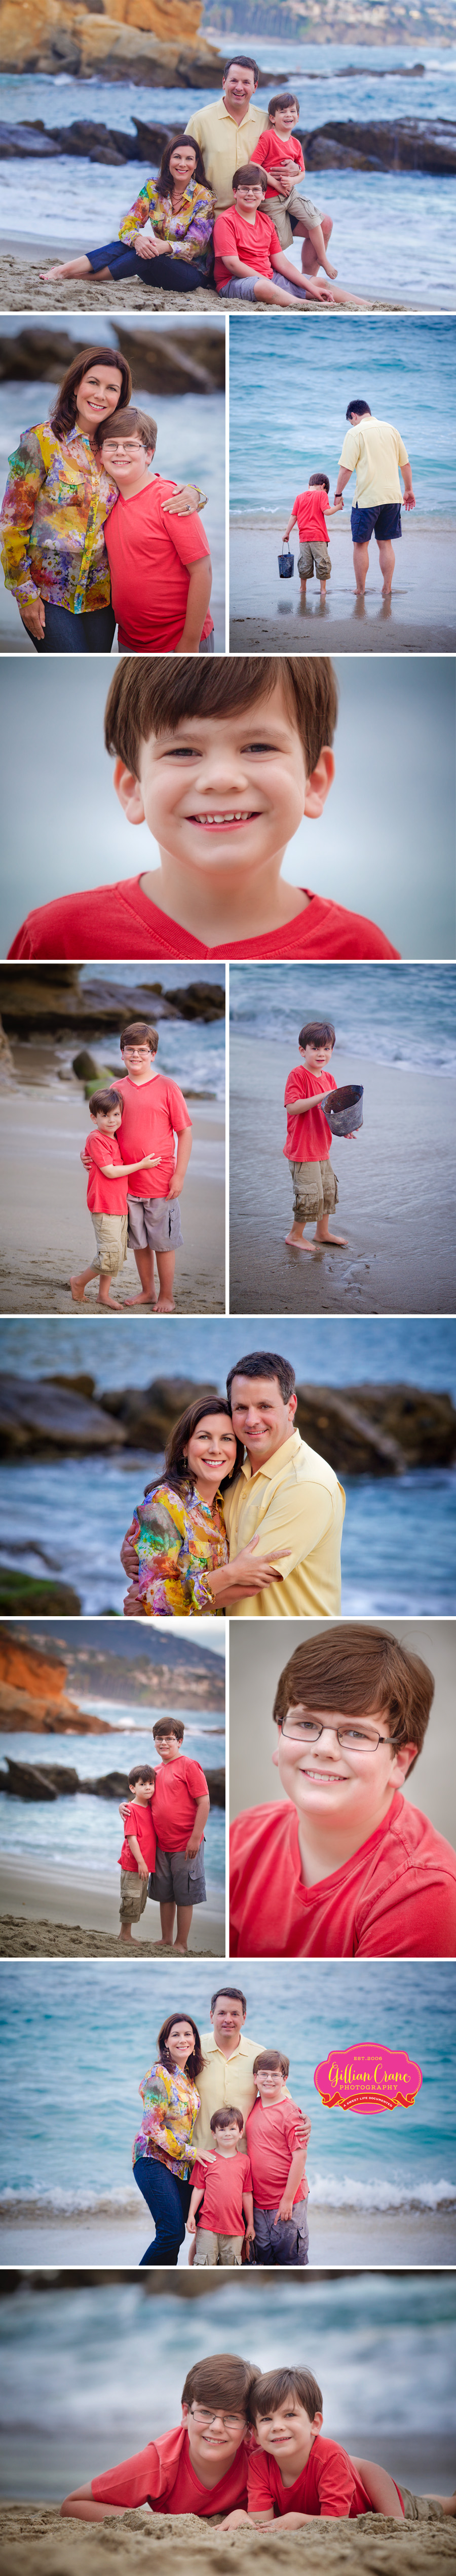 gillian-crane-laguna-beach-family-portrait-photographers